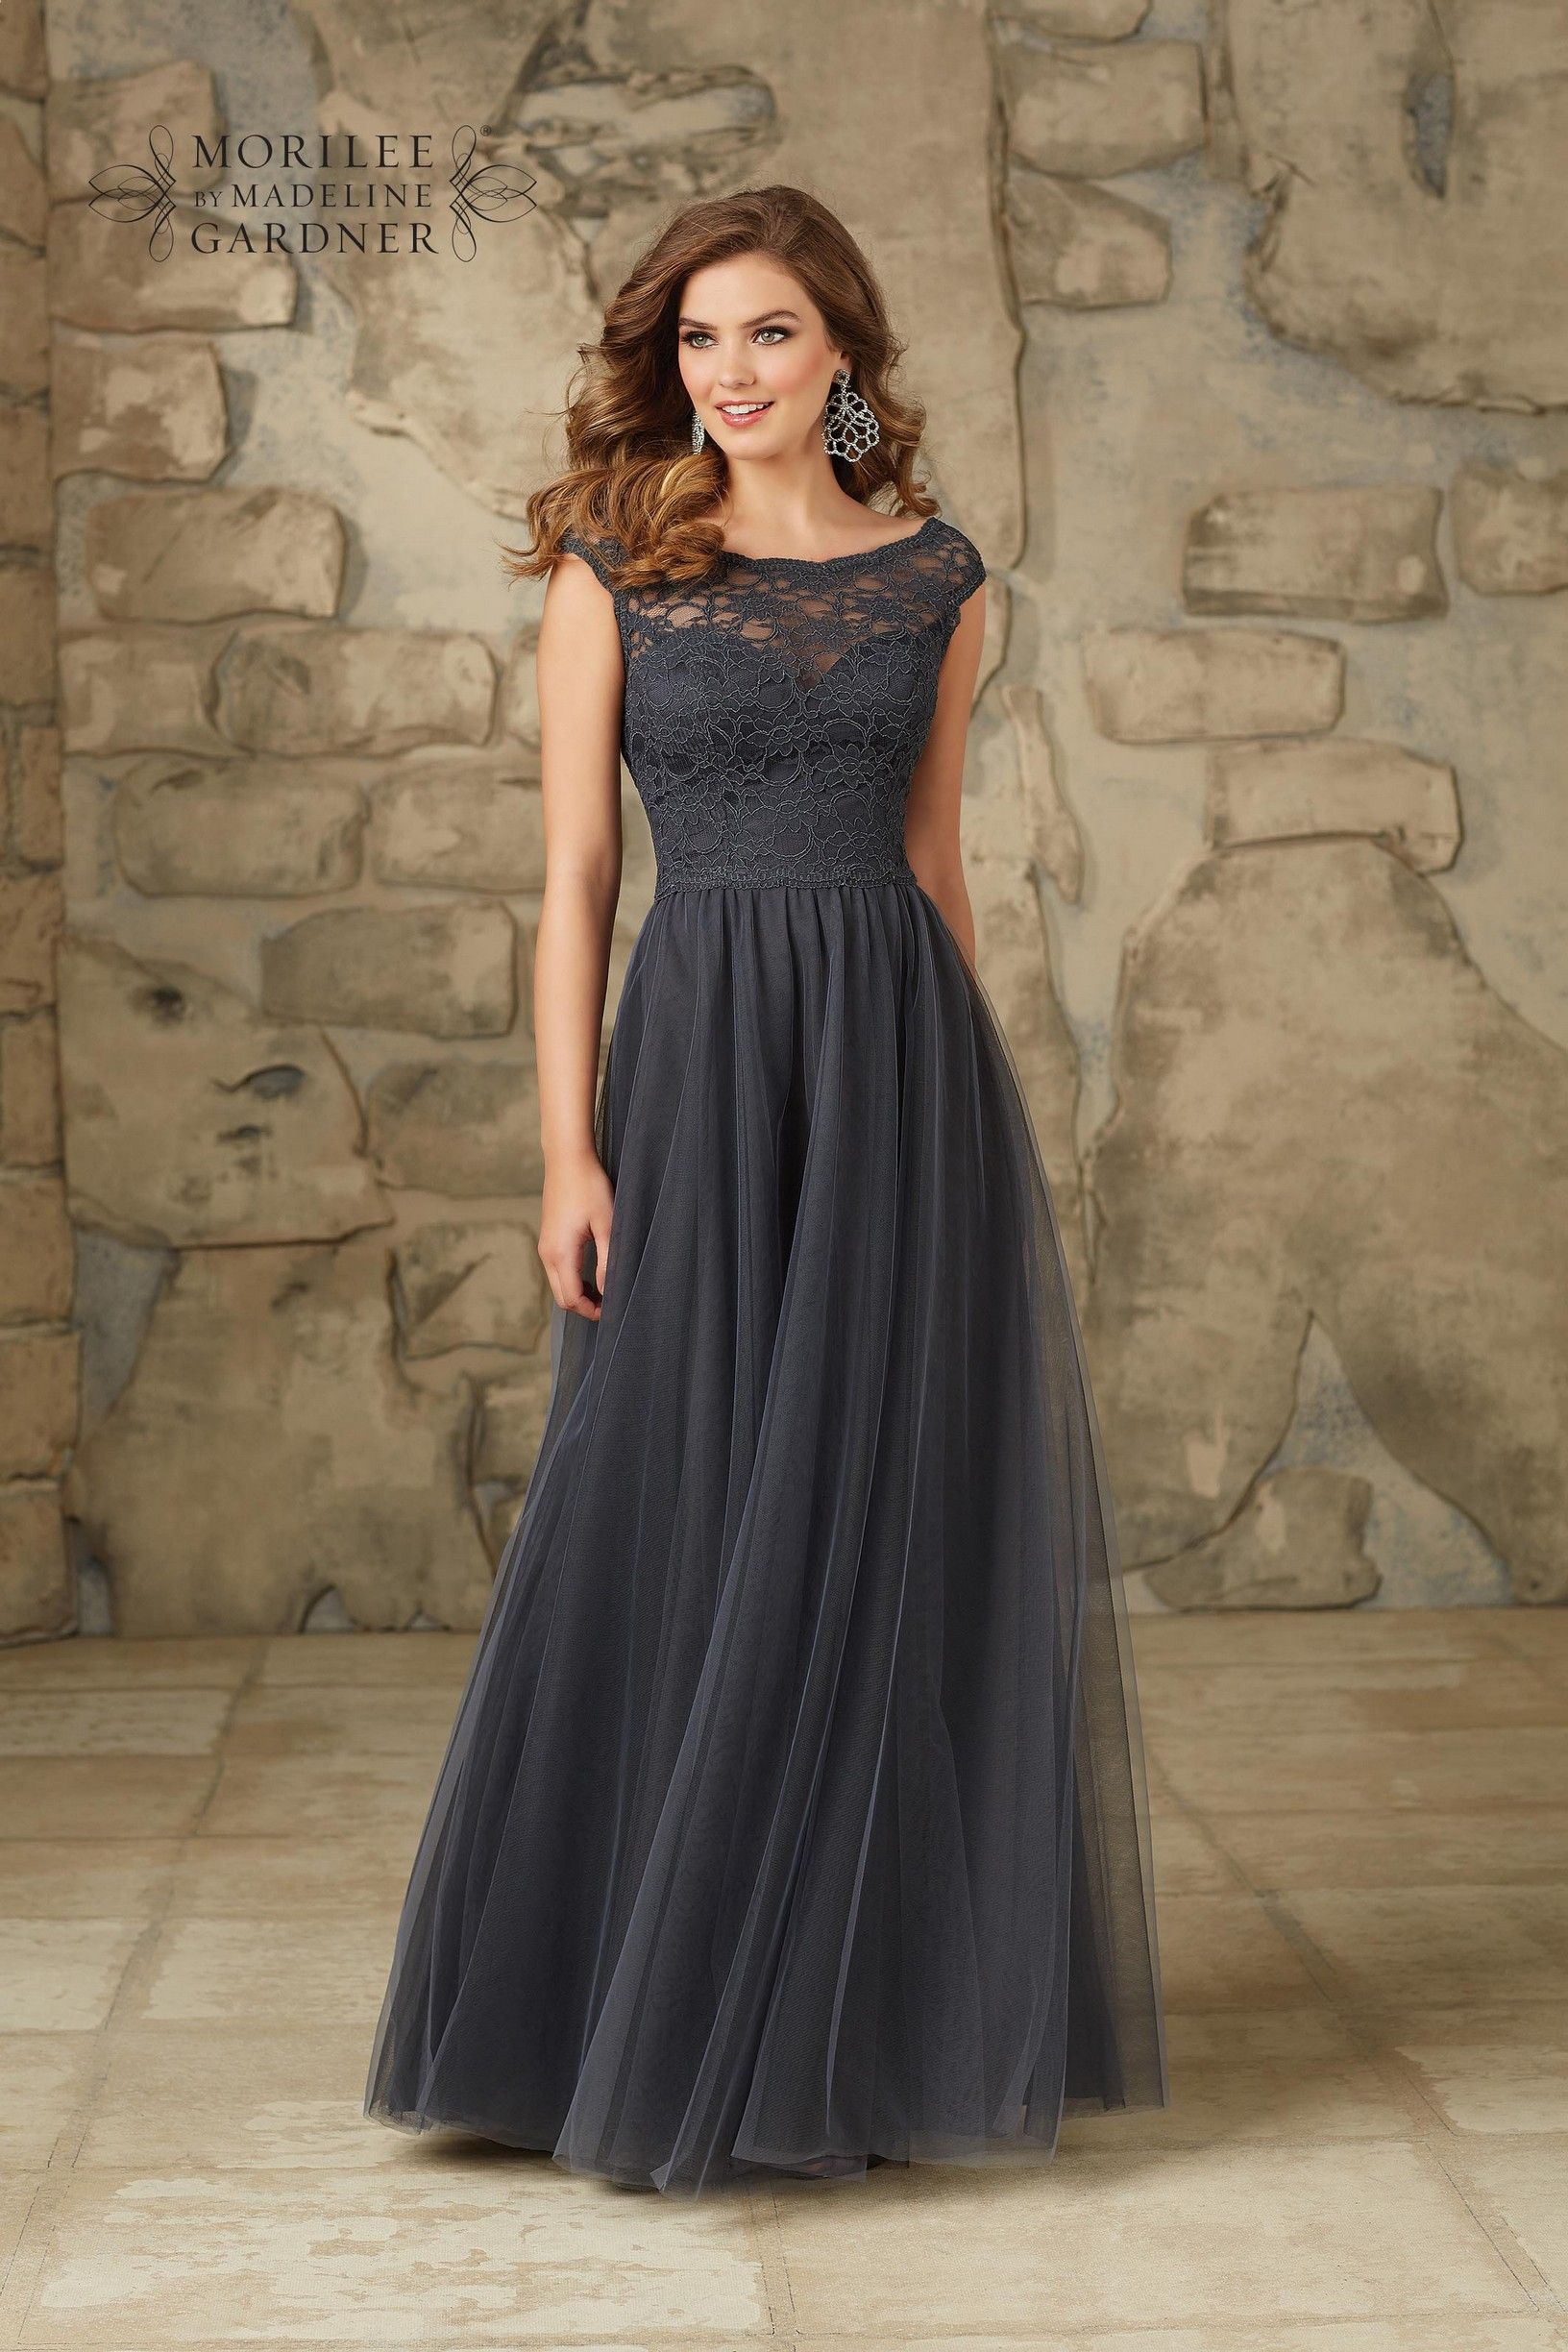 A capped sleeve lace bodice with plunge back on a full length tulle